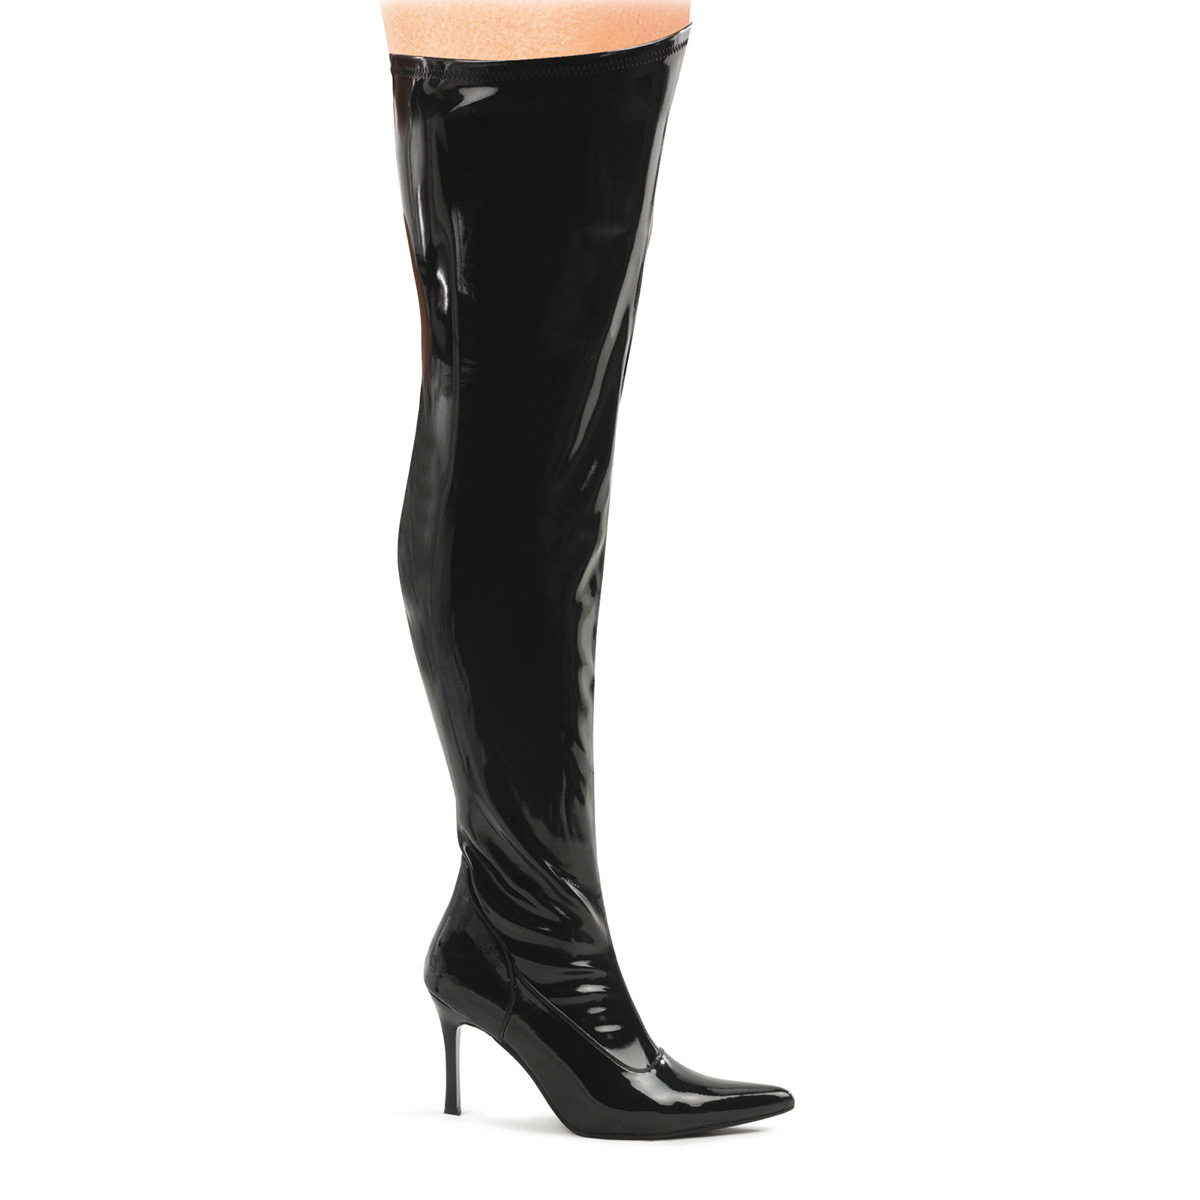 Pleaser WIDE WIDTH Women's Zip Up Black Patent Costume Thigh Boots at Sears.com